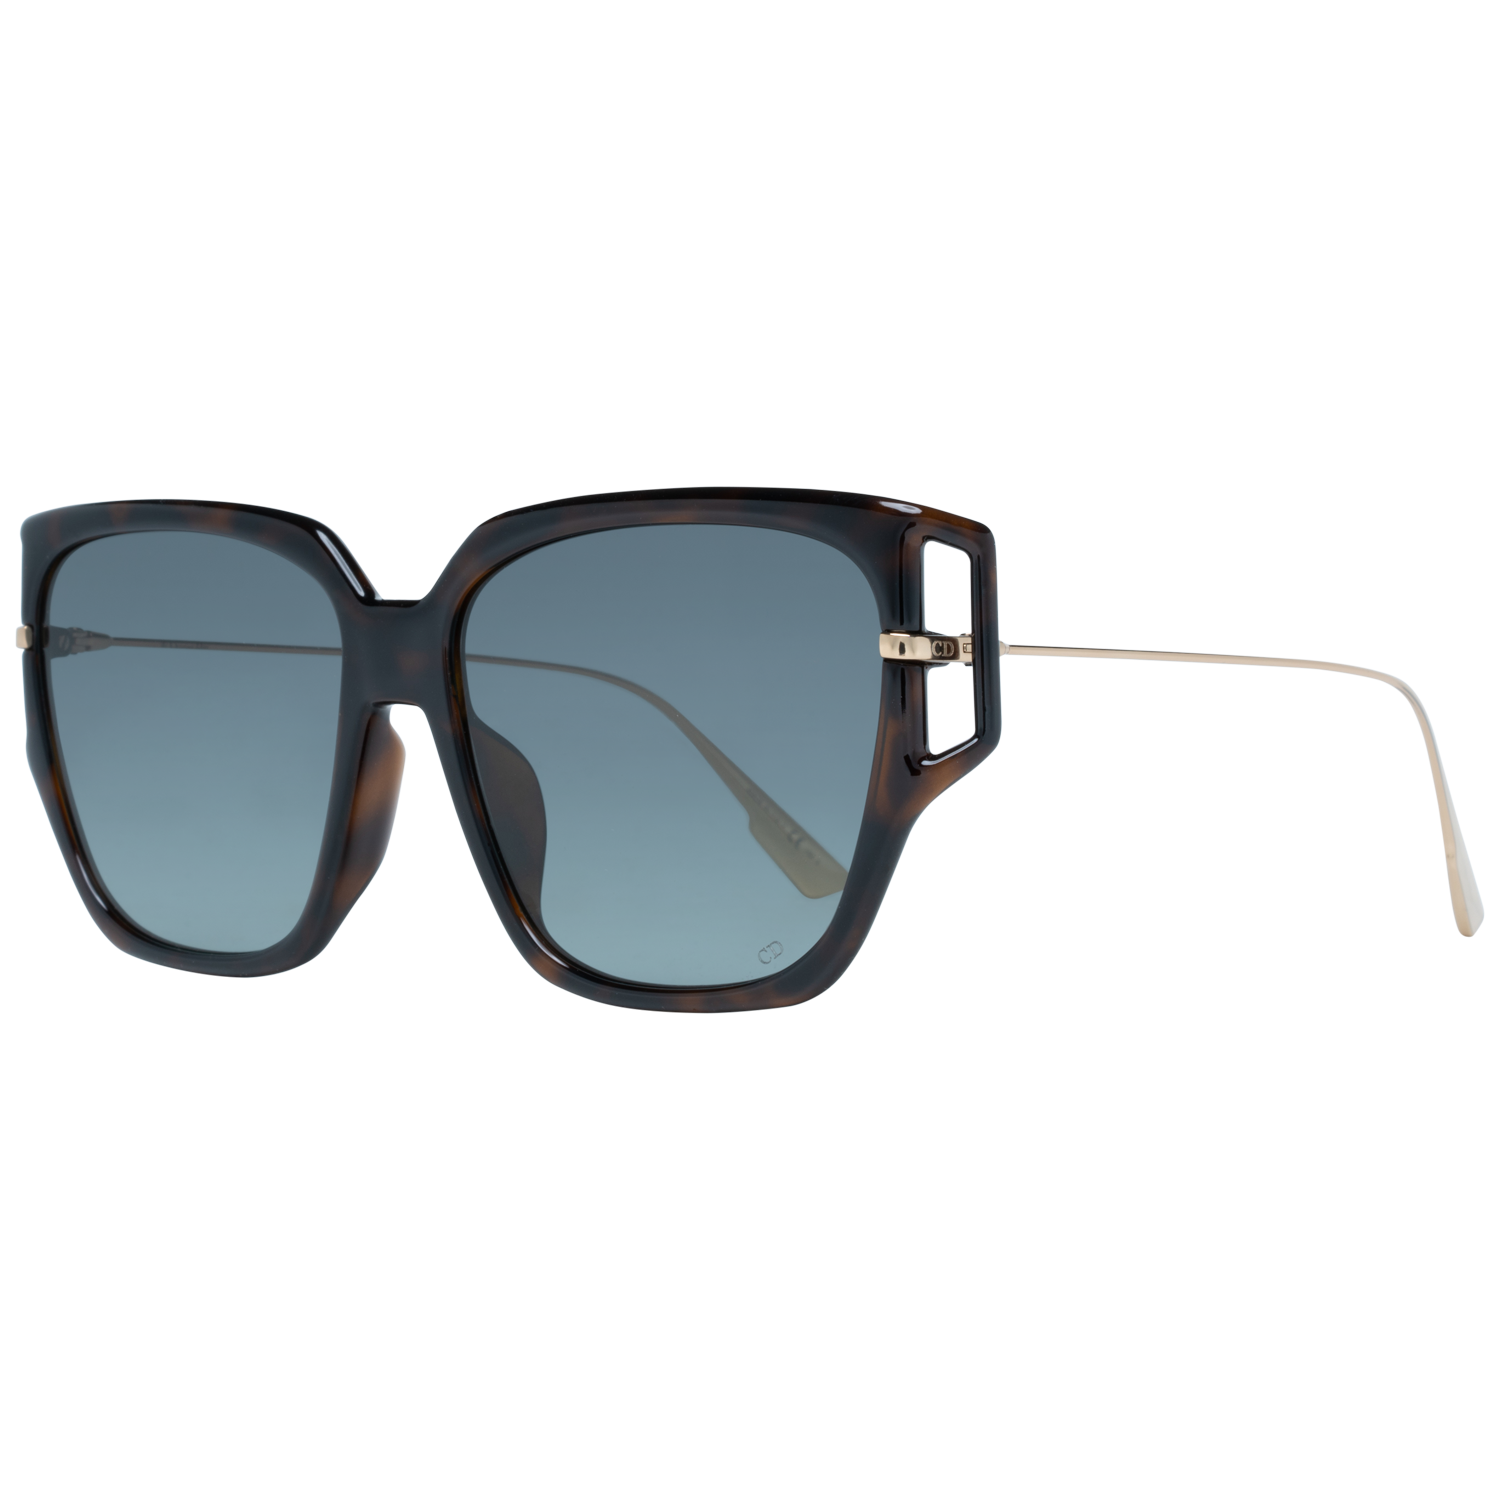 Christian Dior Sunglasses Diordirection3F 086 1I 58 Women Brown